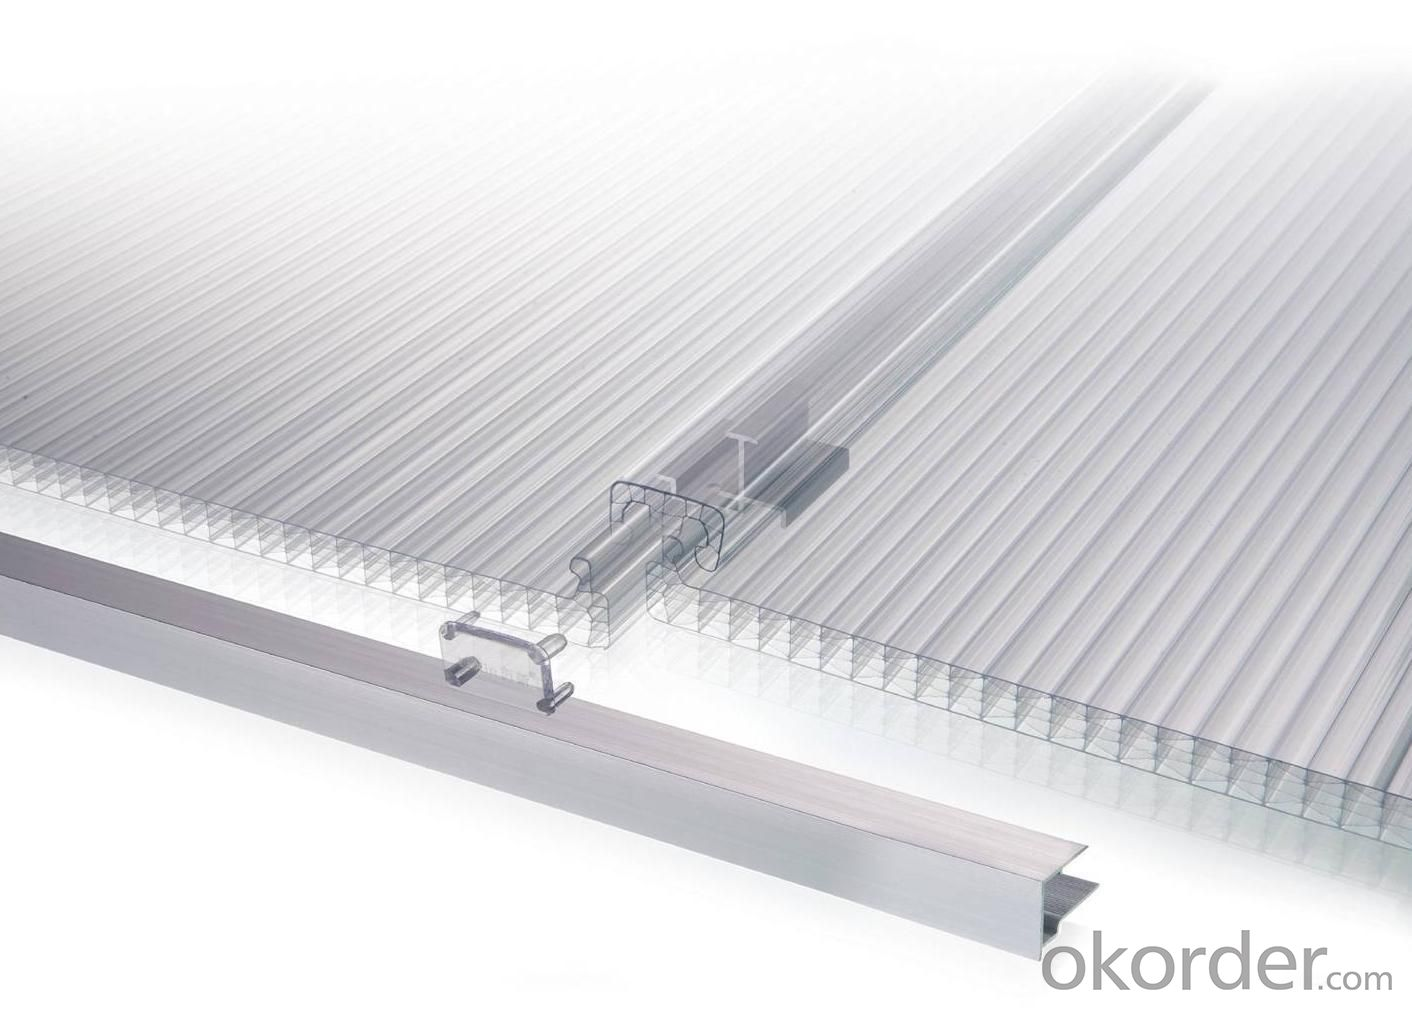 Locking-Design Structure Multiwall System with UV Protection